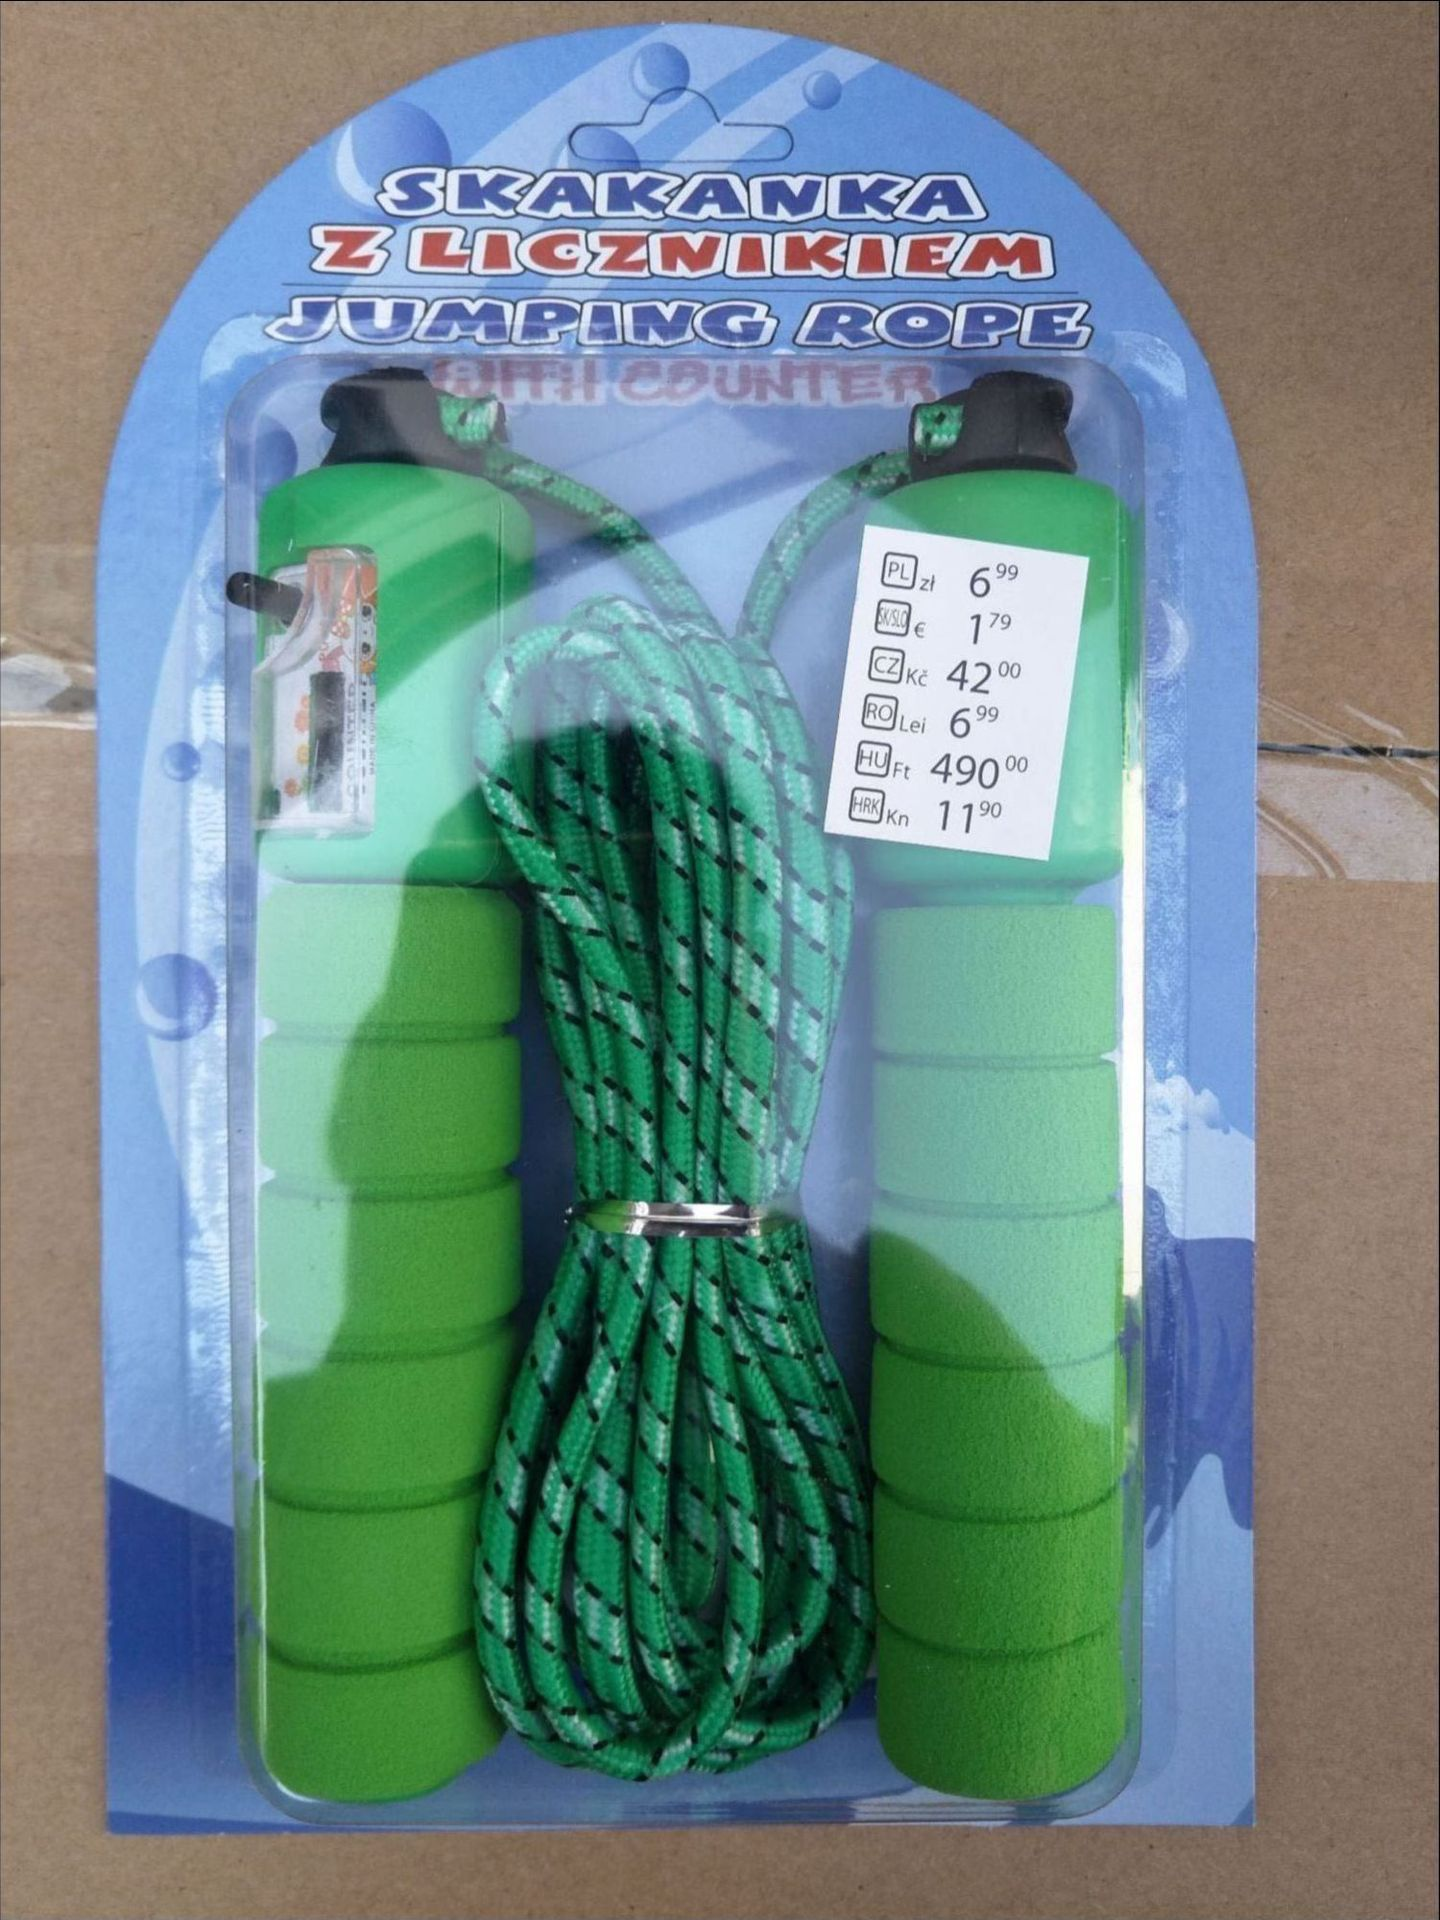 Liang Jian Factory Odm Oem Customizable-Jump Rope Welcome To Sample Color Fixing Set Material Production One-Stop